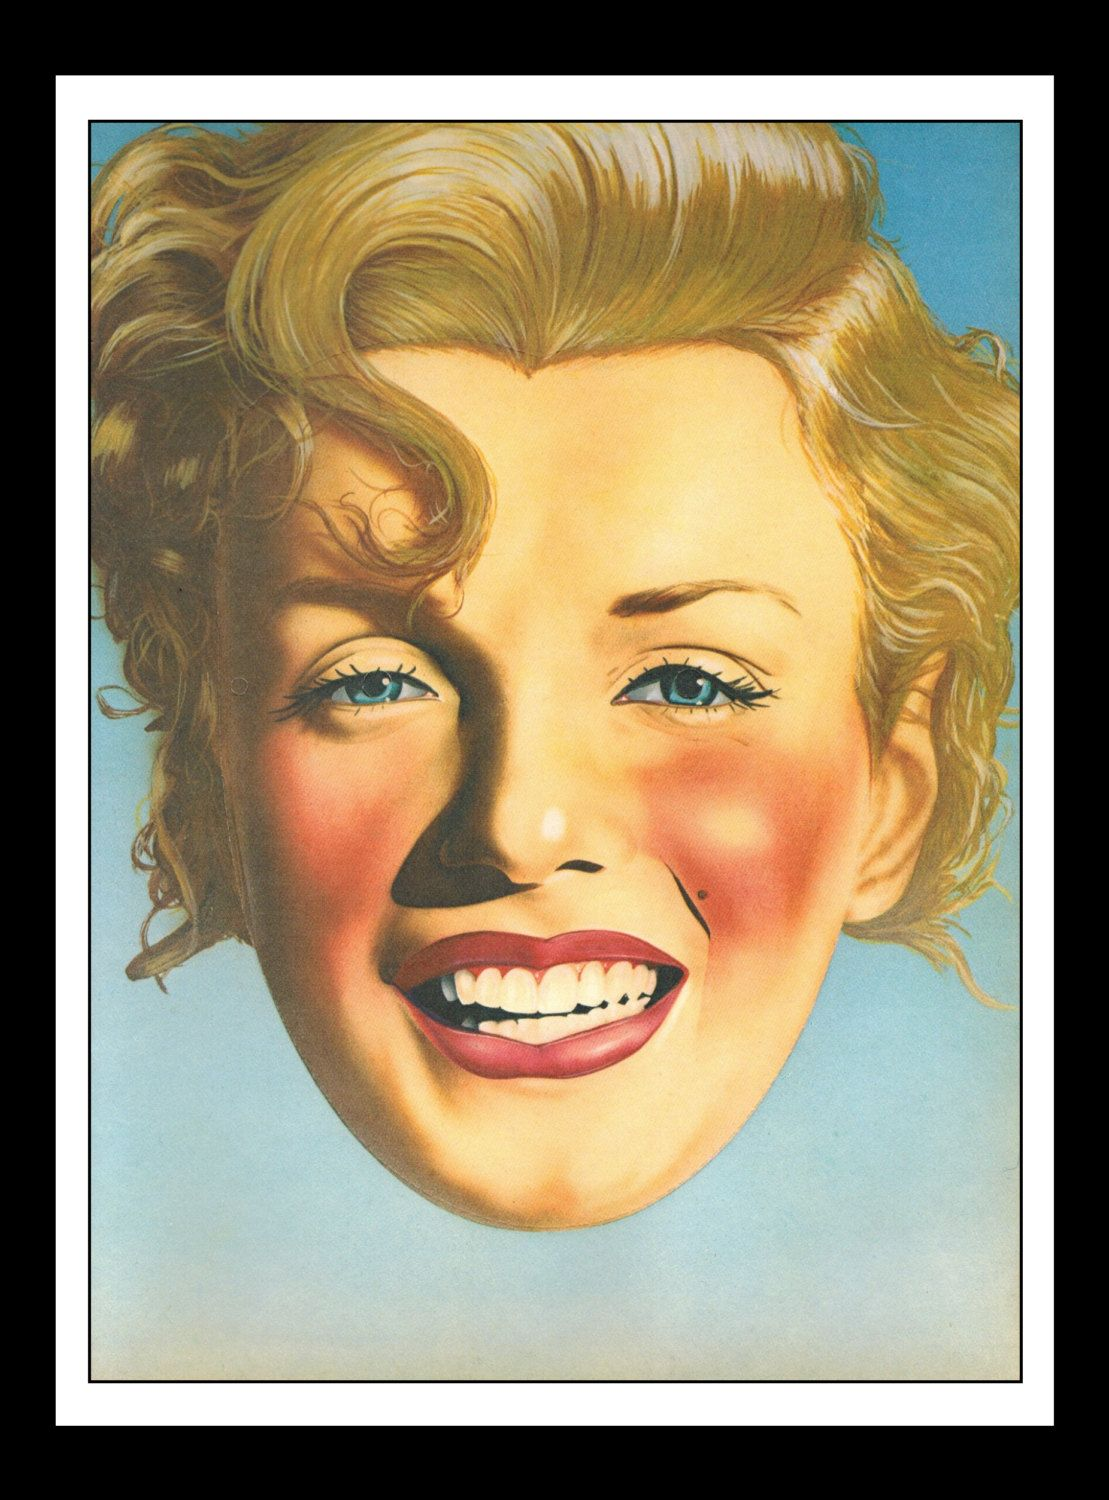 Playboy Vintage Pinup May 1979 Marilyn Monroe Illustration By Dennis ...